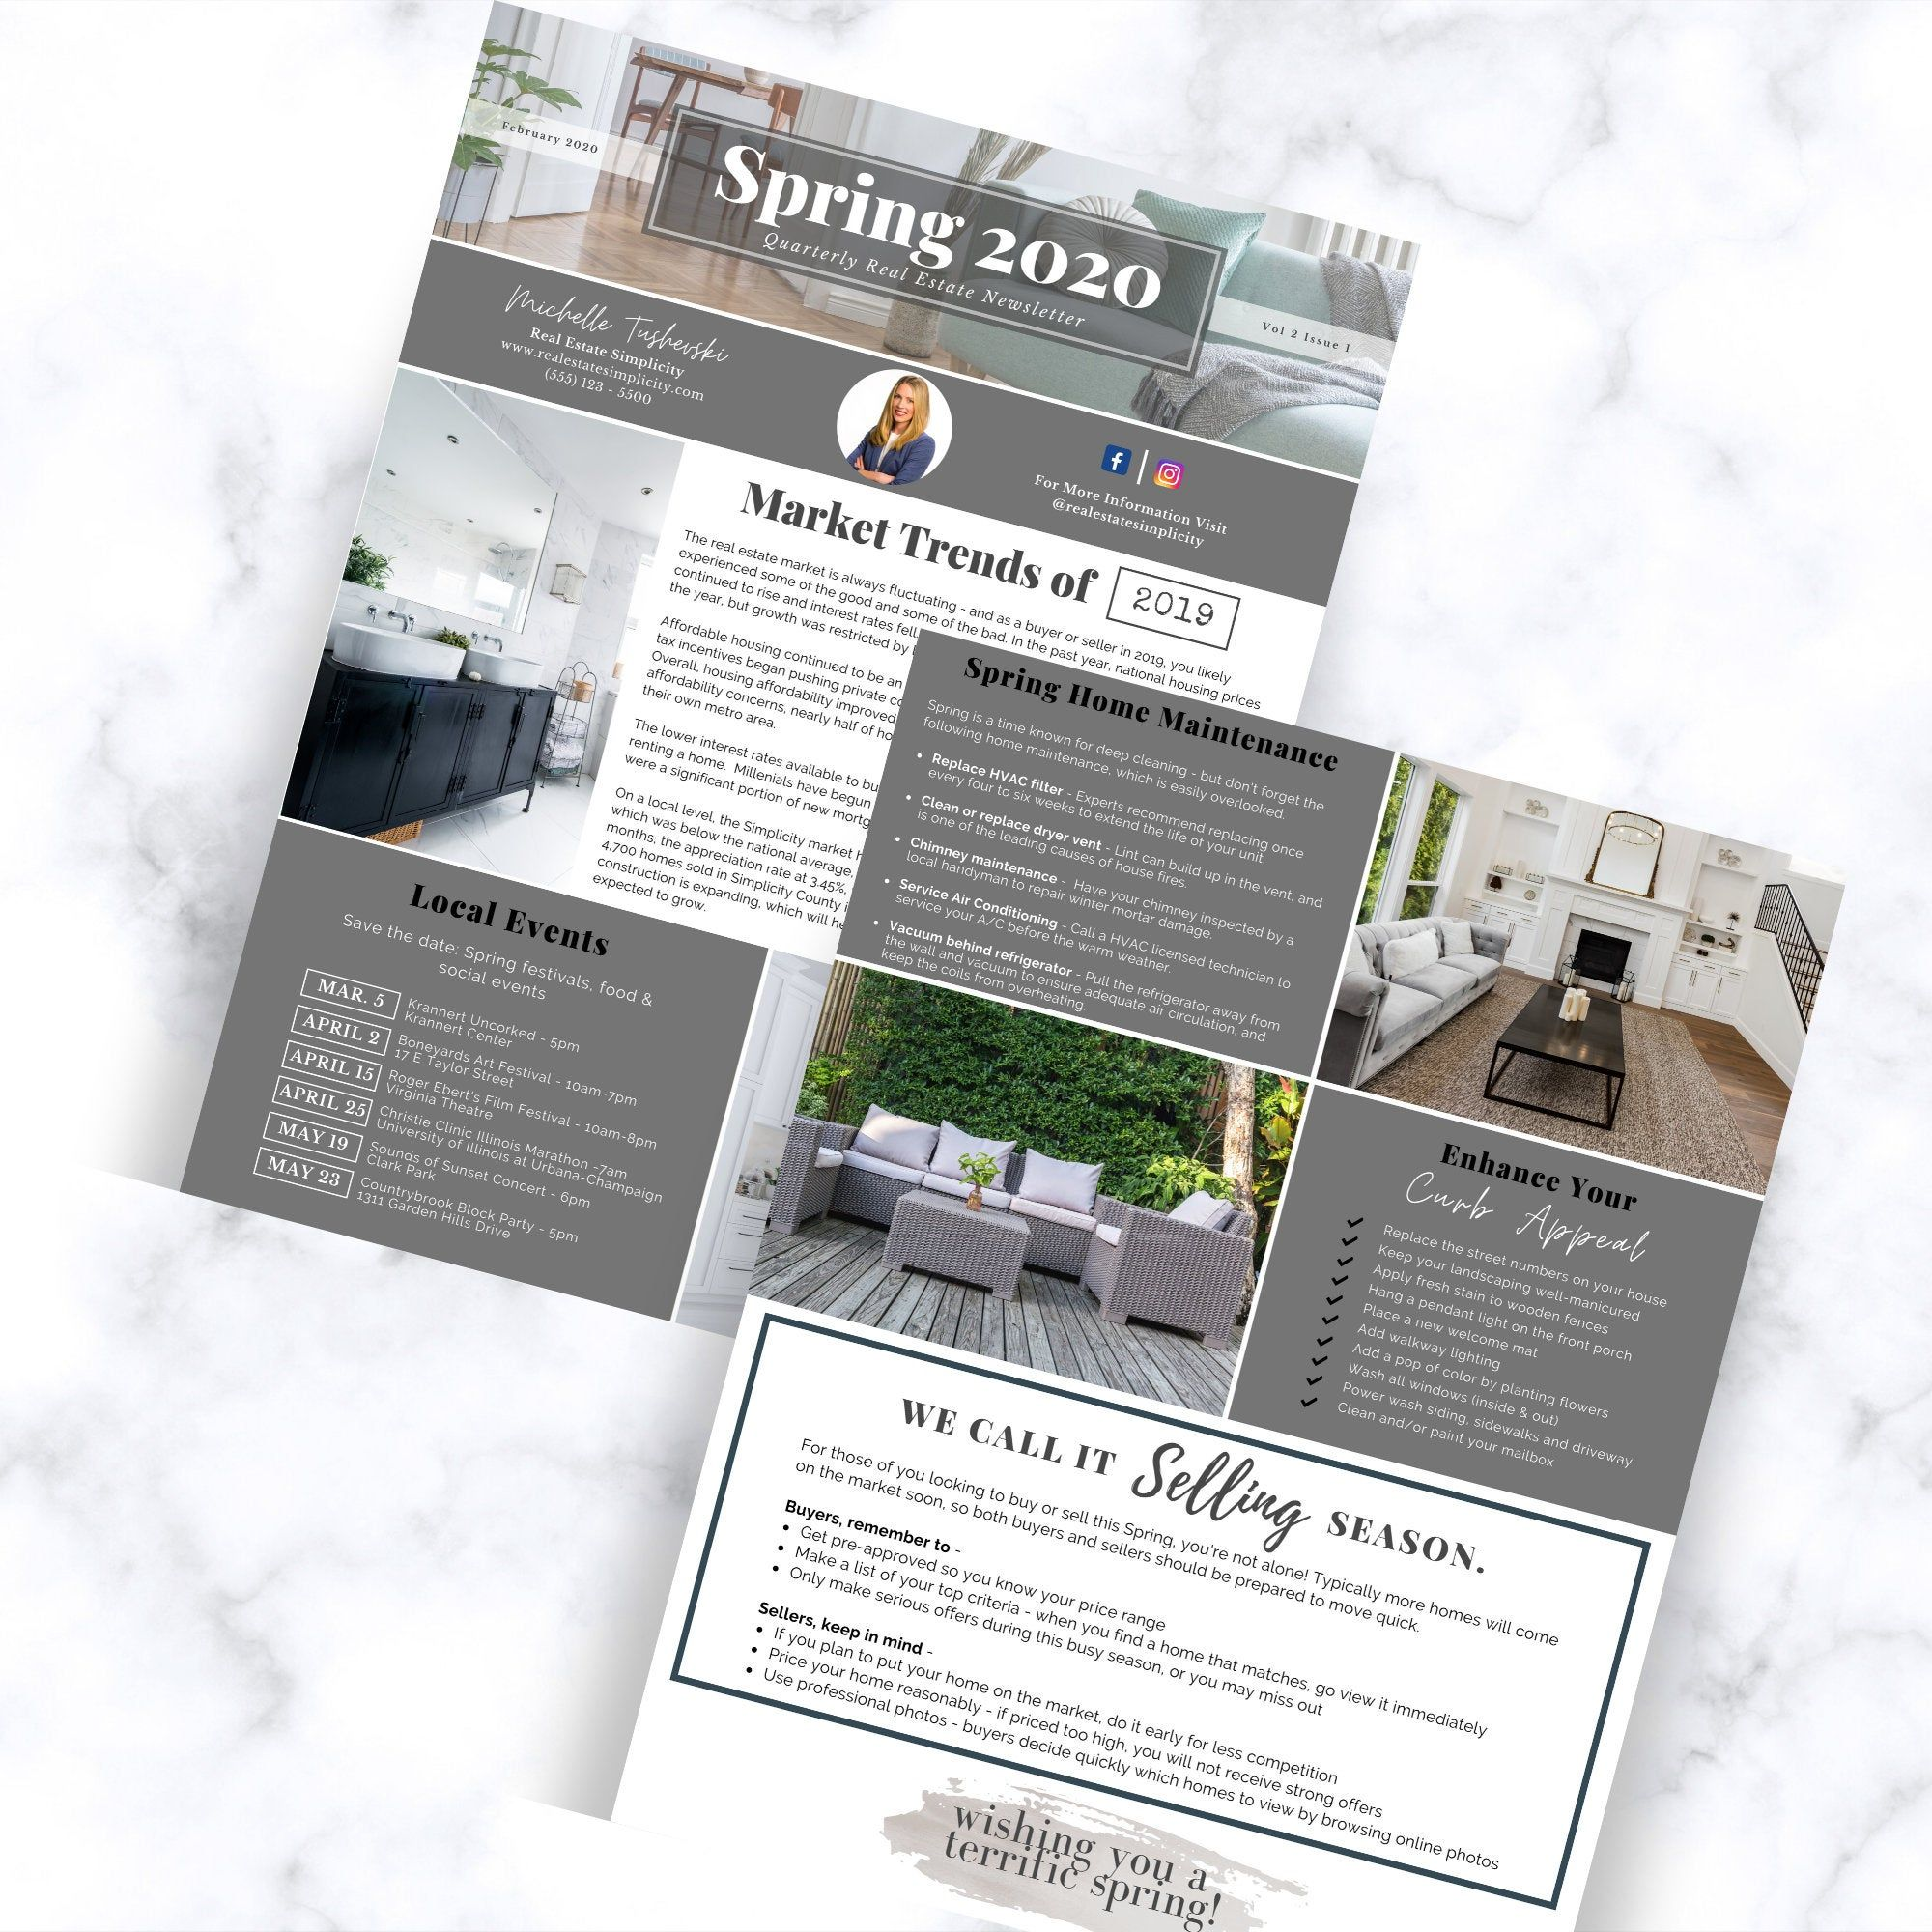 Real Estate Newsletter Template, Spring 2020 newsletter, Real estate marketing, Realtor newsletter, Realtor flyer, Customize, Canva editable